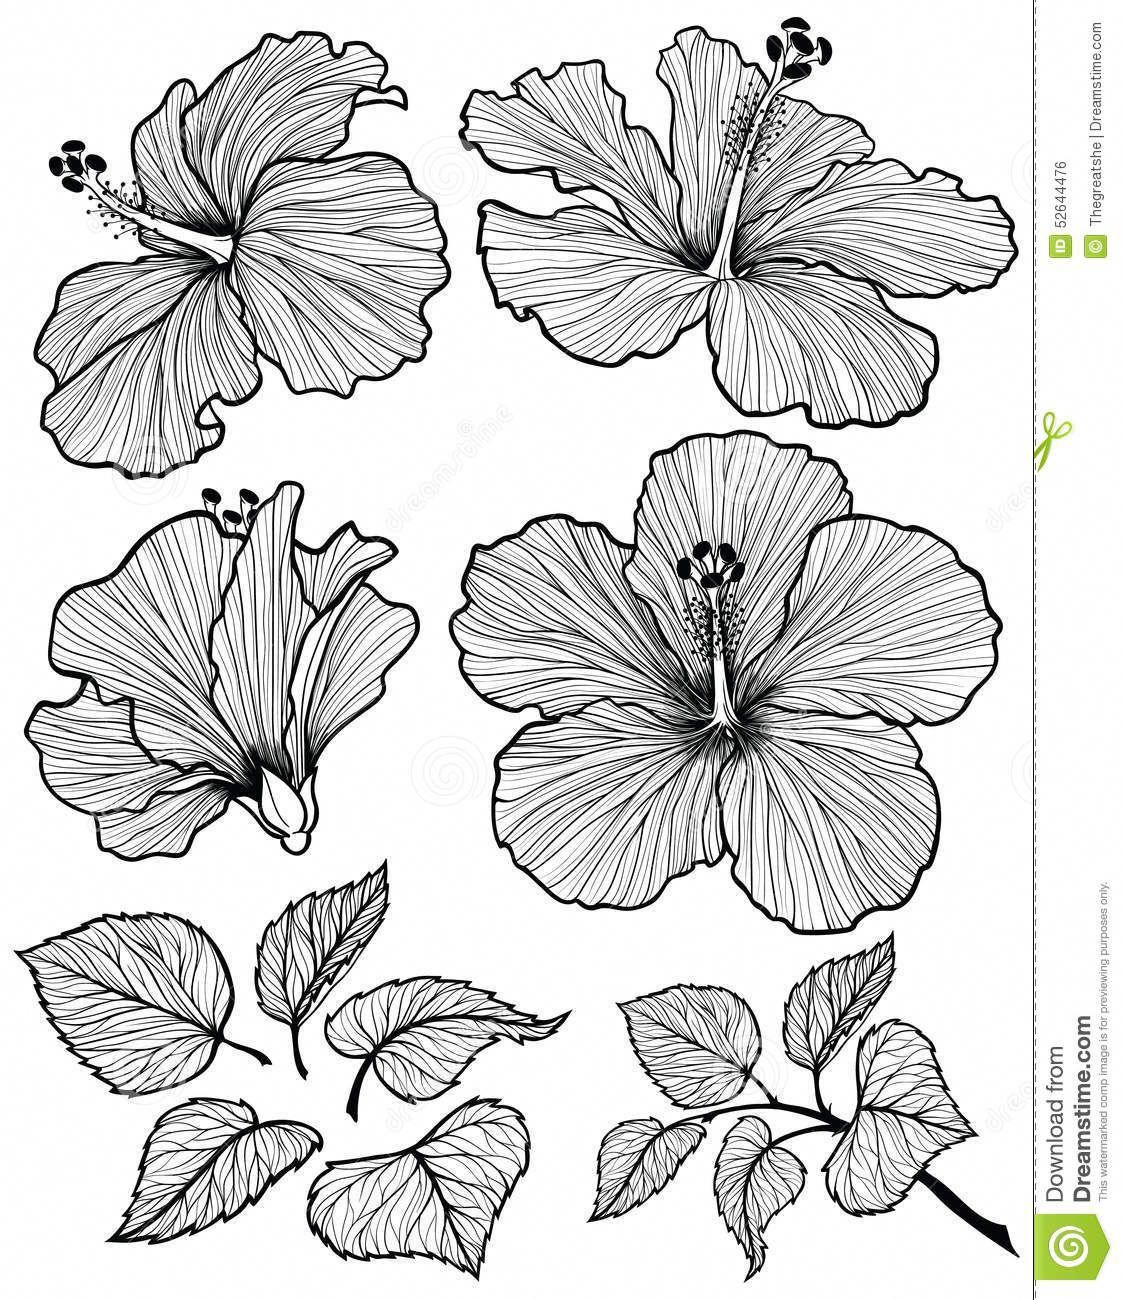 Hibiscus Flower Benefits For Hair And Skin Hibiscus With Images Flower Drawing Flower Graphic